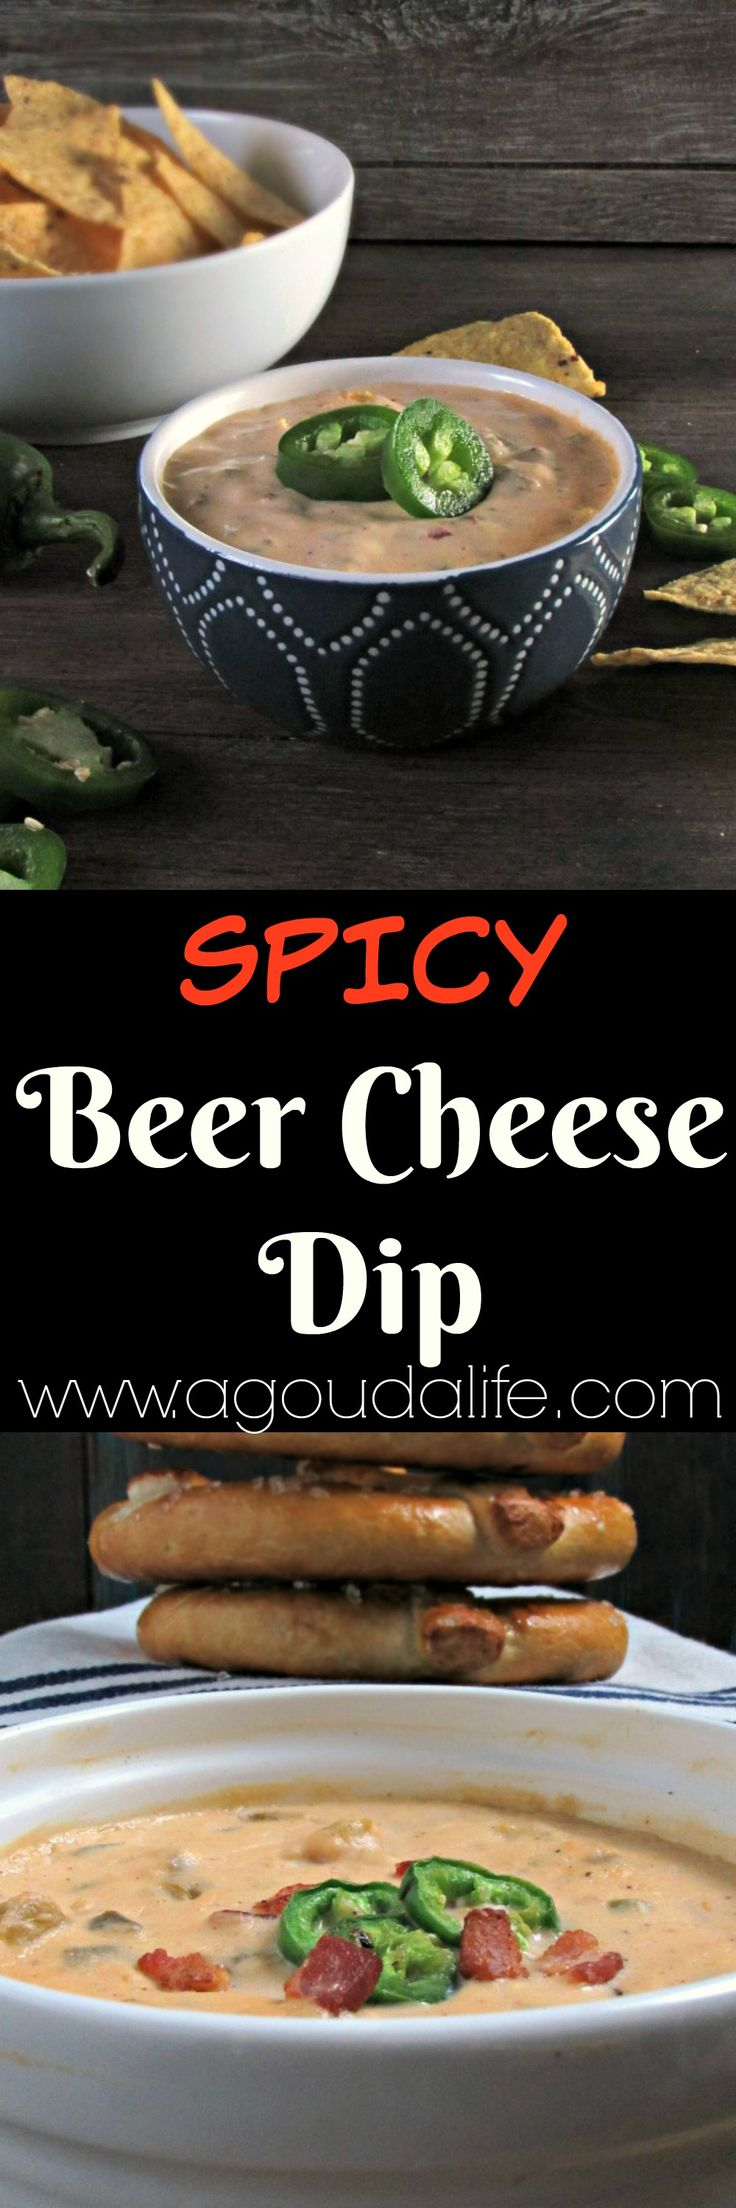 a recipe for my favorite spicy cheese dip Crackers make great dippers for one of my favorite artichoke dip recipes (chips and breadsticks nacho cheese dip with jobs, school and sport activities, evening is our time for family fun, says dawn.